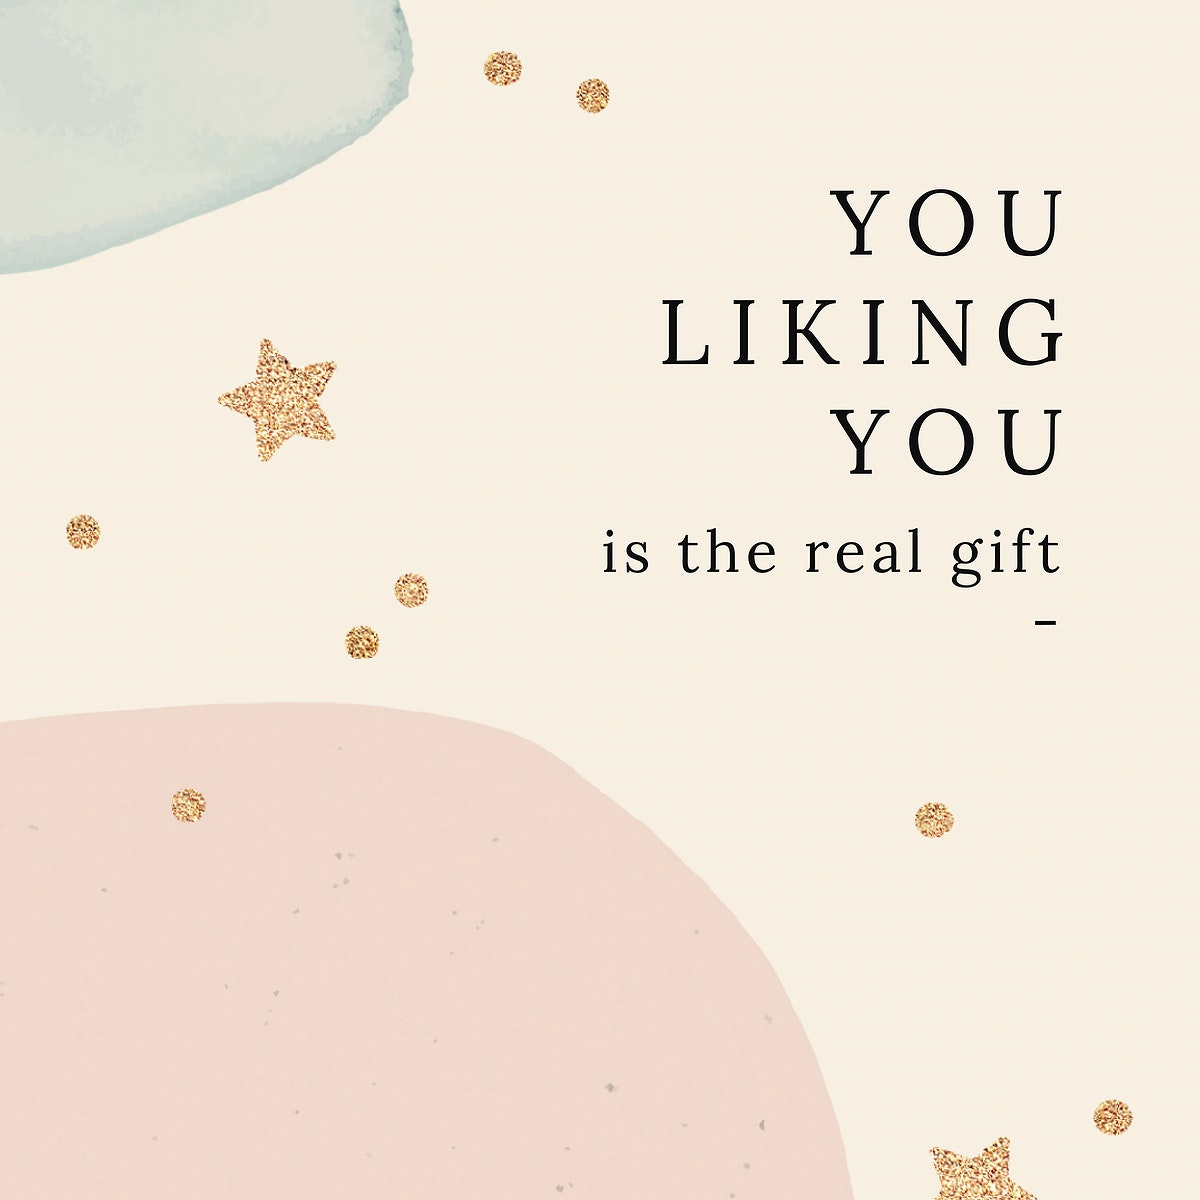 You liking you is the real gift quote social media template vector